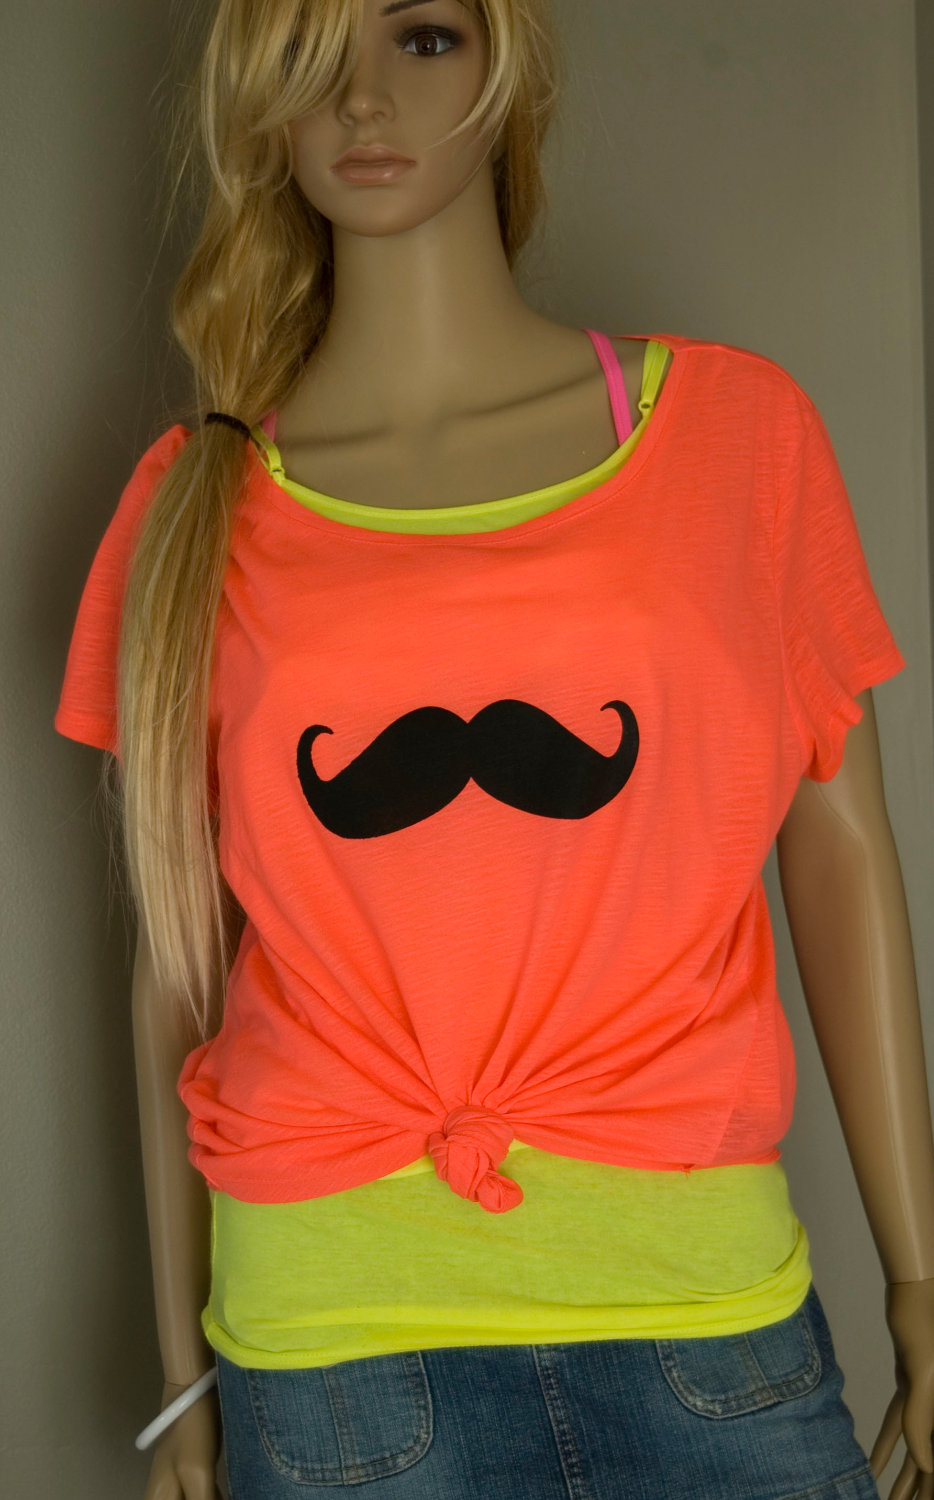 1f405b022 eBay images Mustache Fashion HD wallpaper and background photos ...